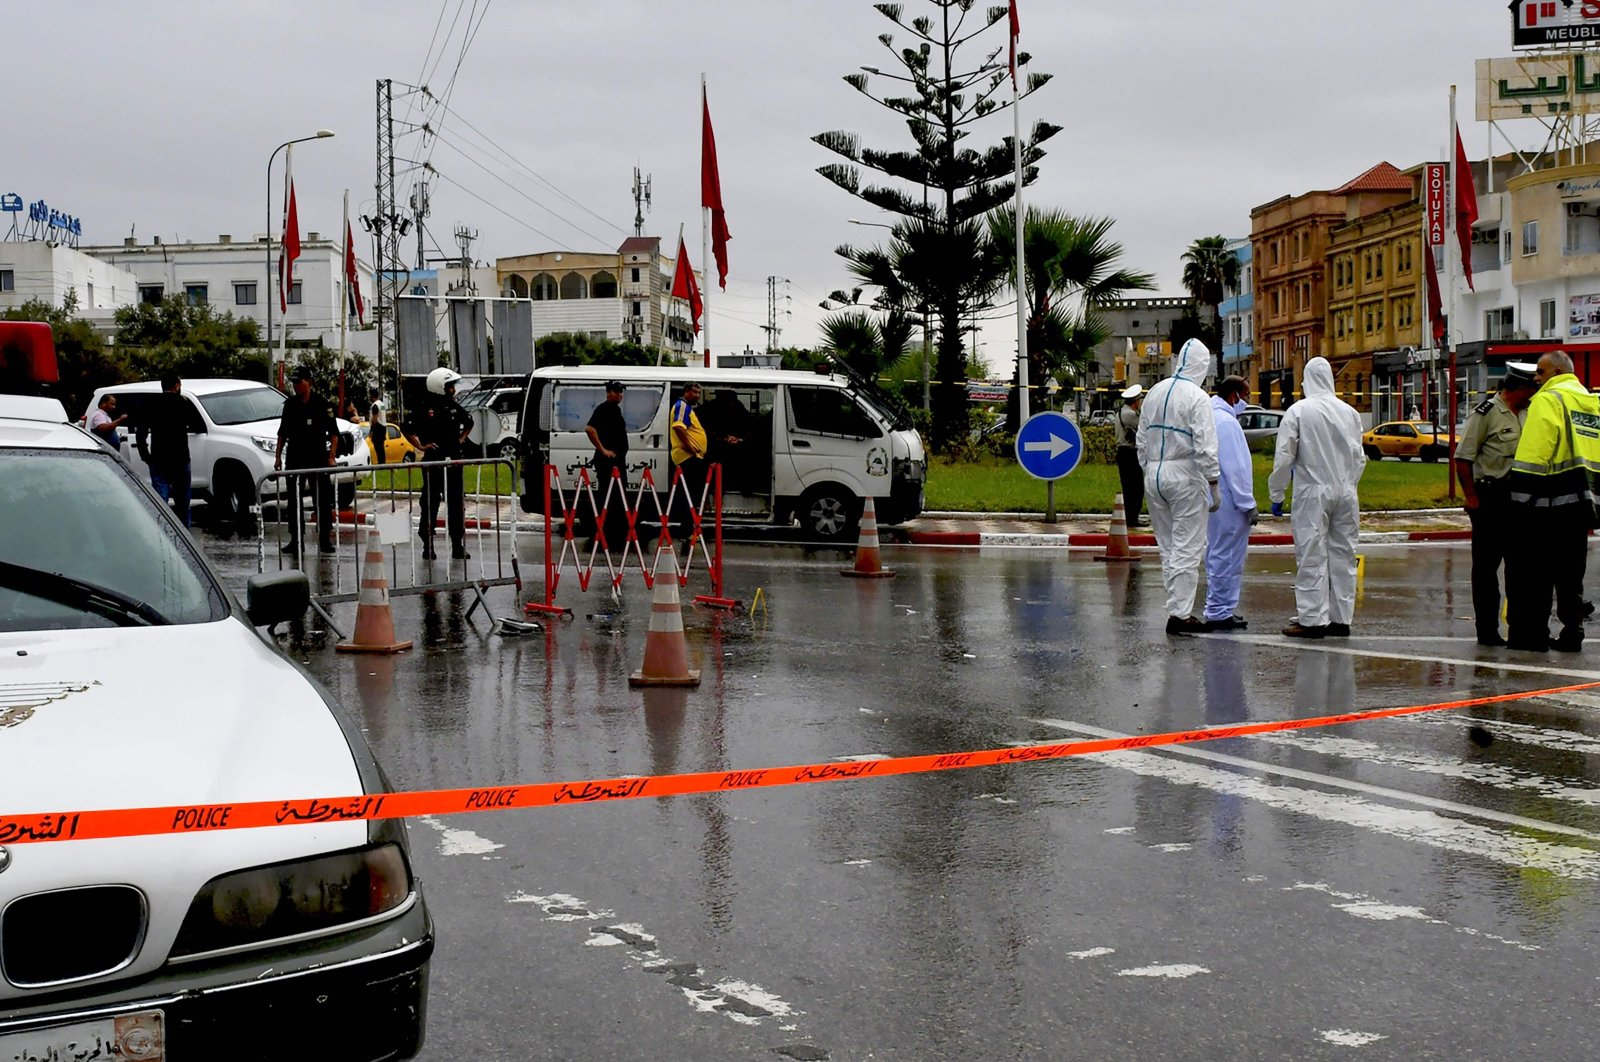 Tunisian forensic police investigate the site of an attack on Tunisian National Guard officers in Sousse, south of the capital Tunis, Sept. 6, 2020. (AFP Photo)